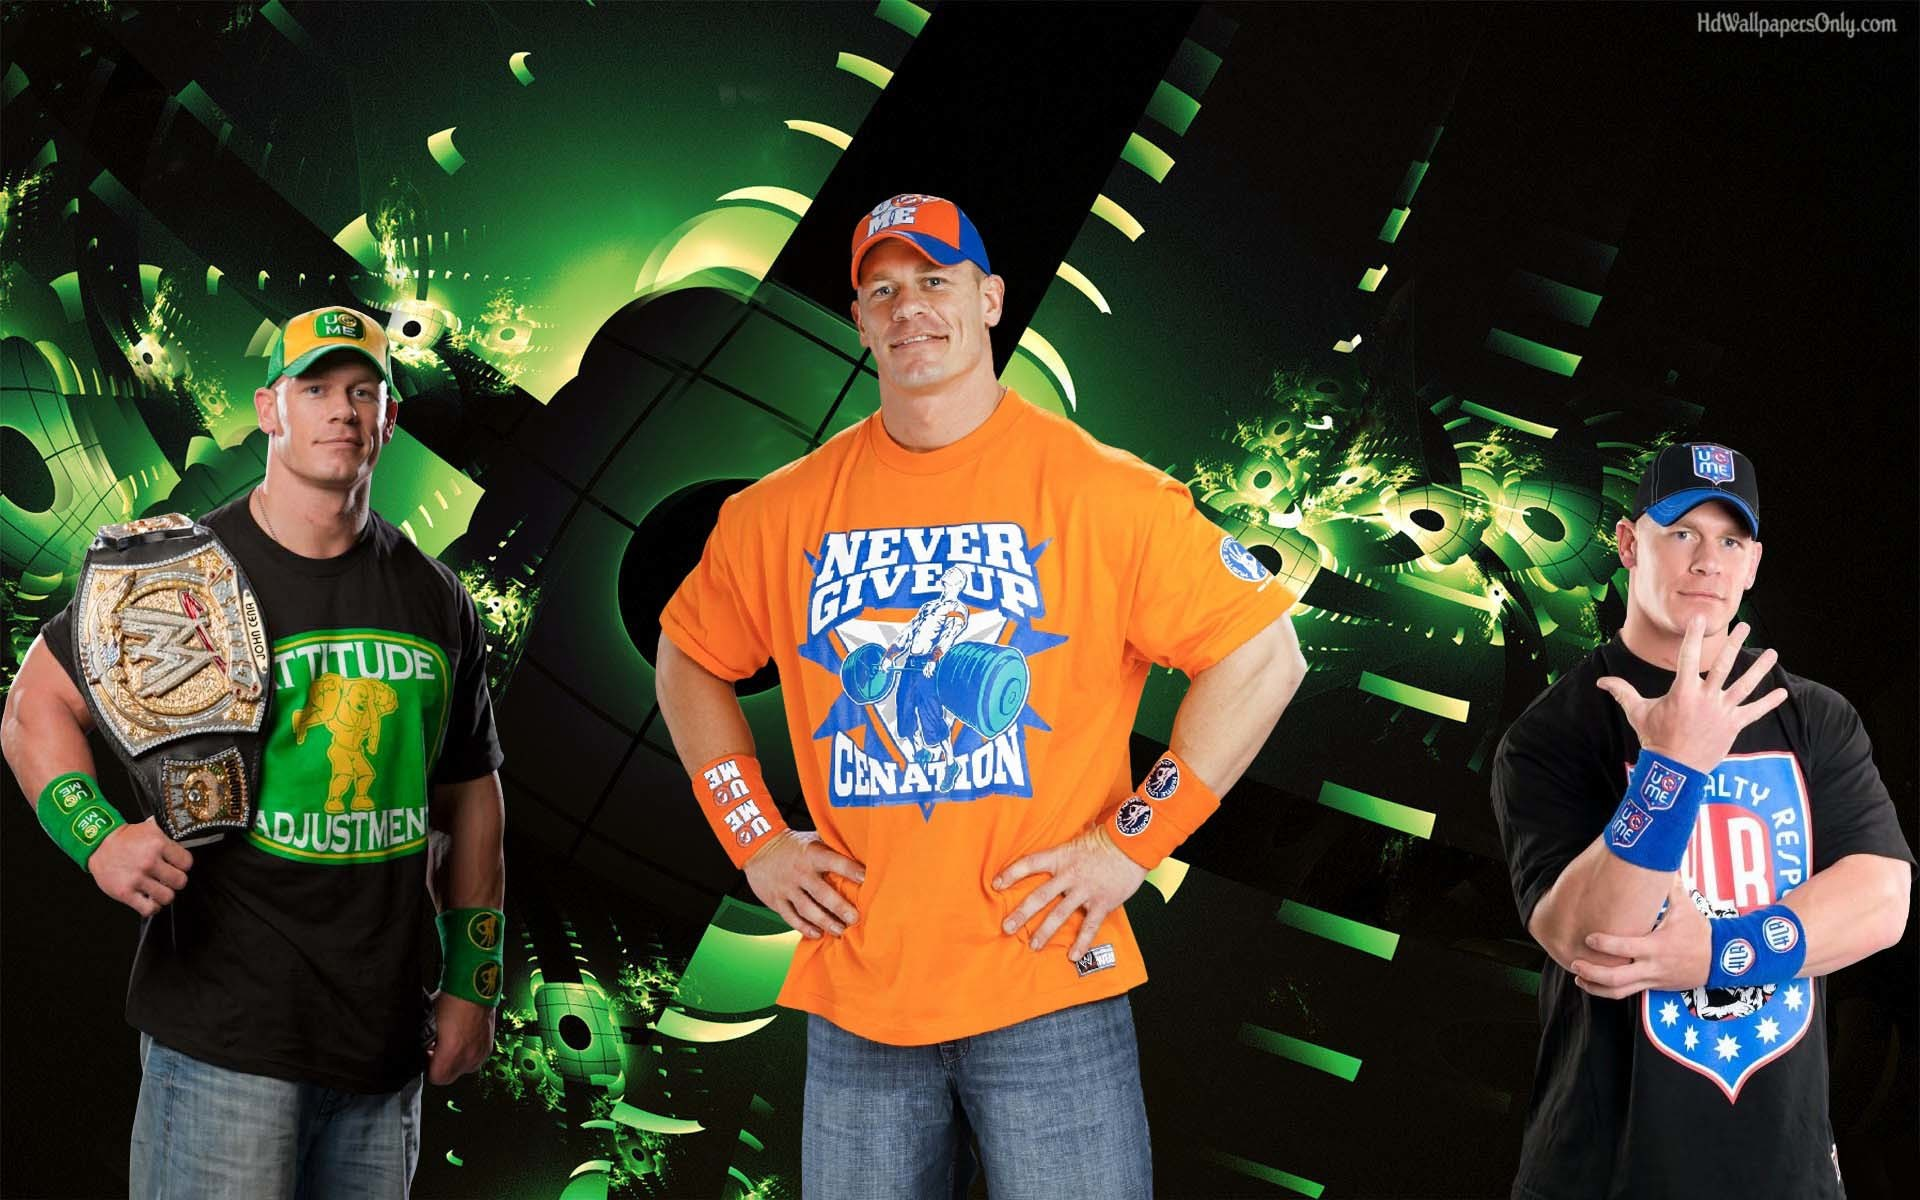 1920x1200 John Cena hd wallpapers 2014 - HD Wallpapers OnlyHD Wallpapers Only